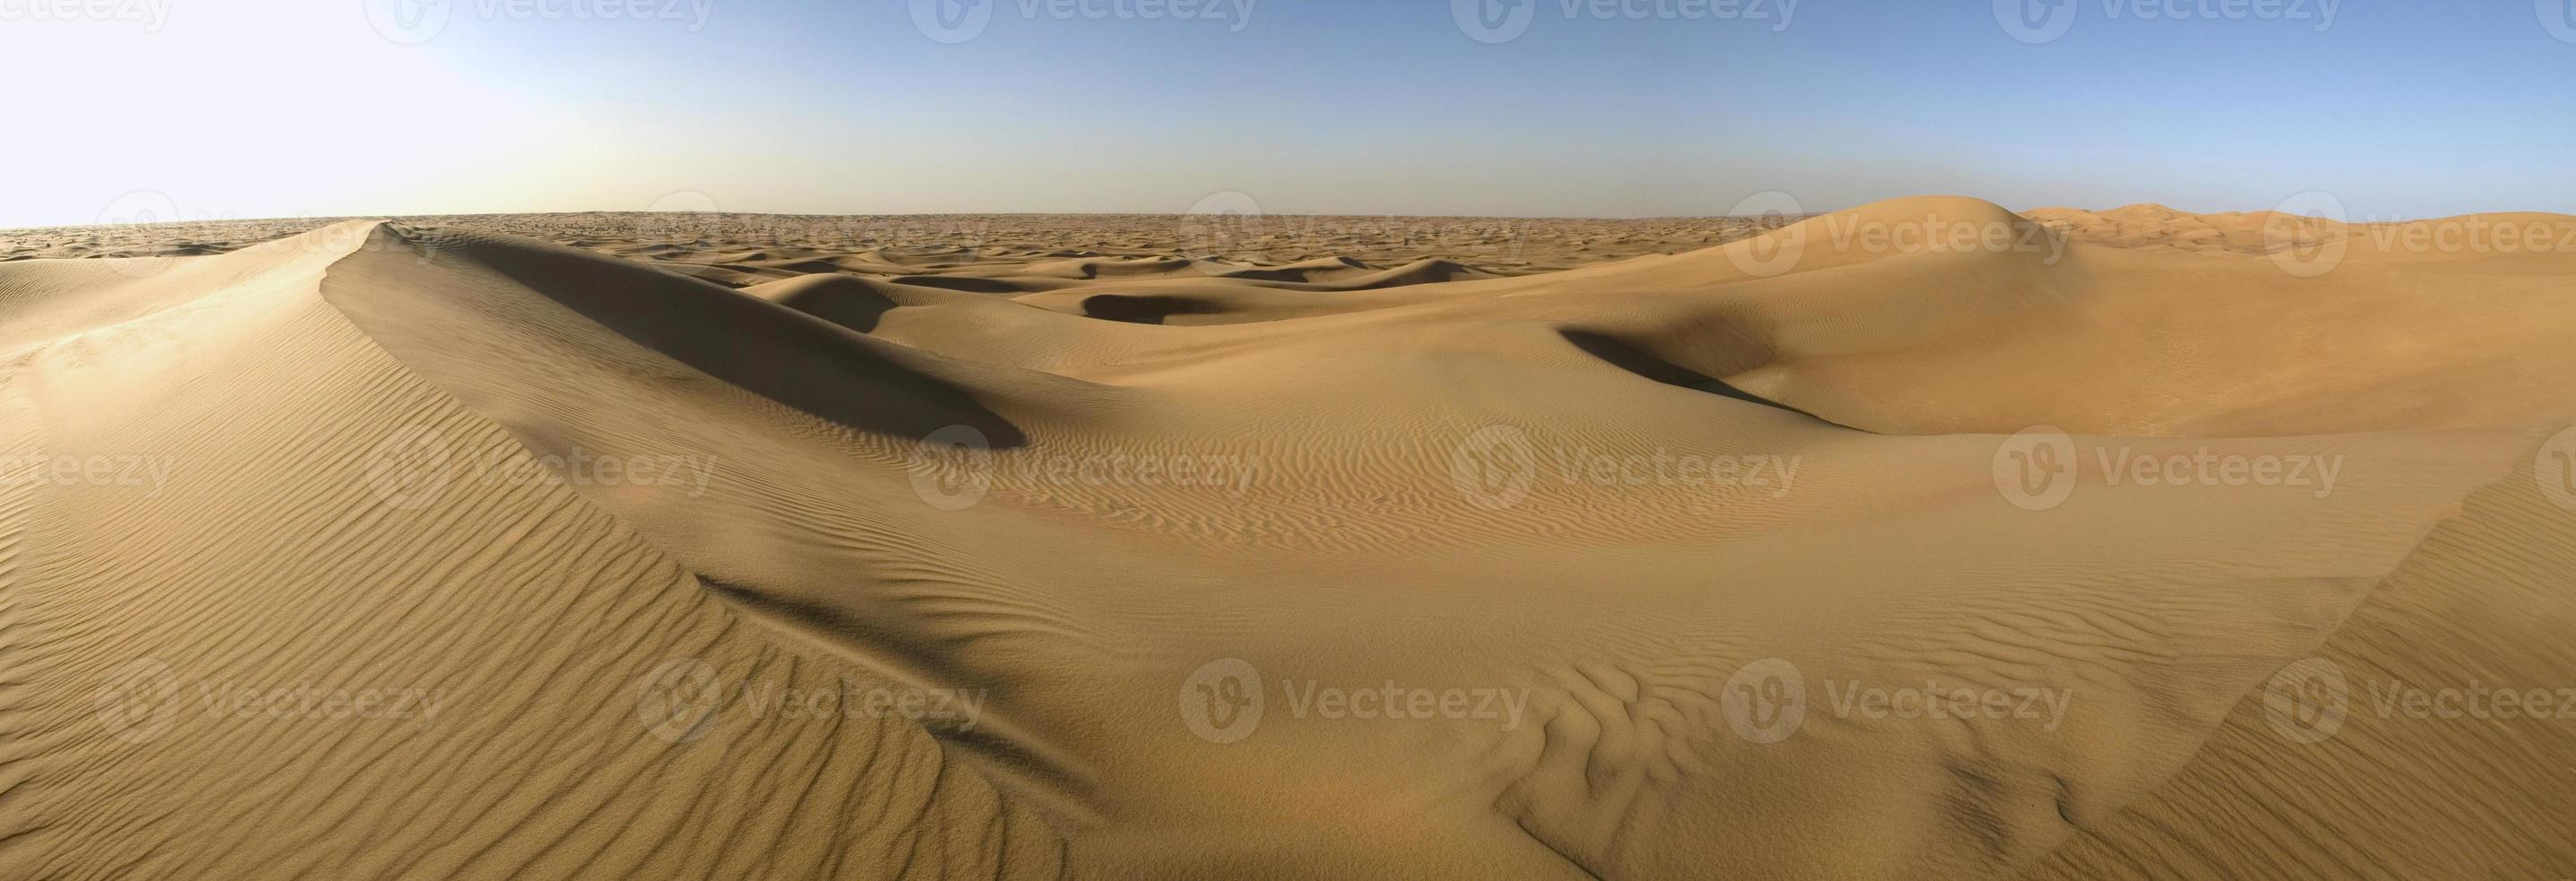 Empty desert with sand dunes and no roads photo